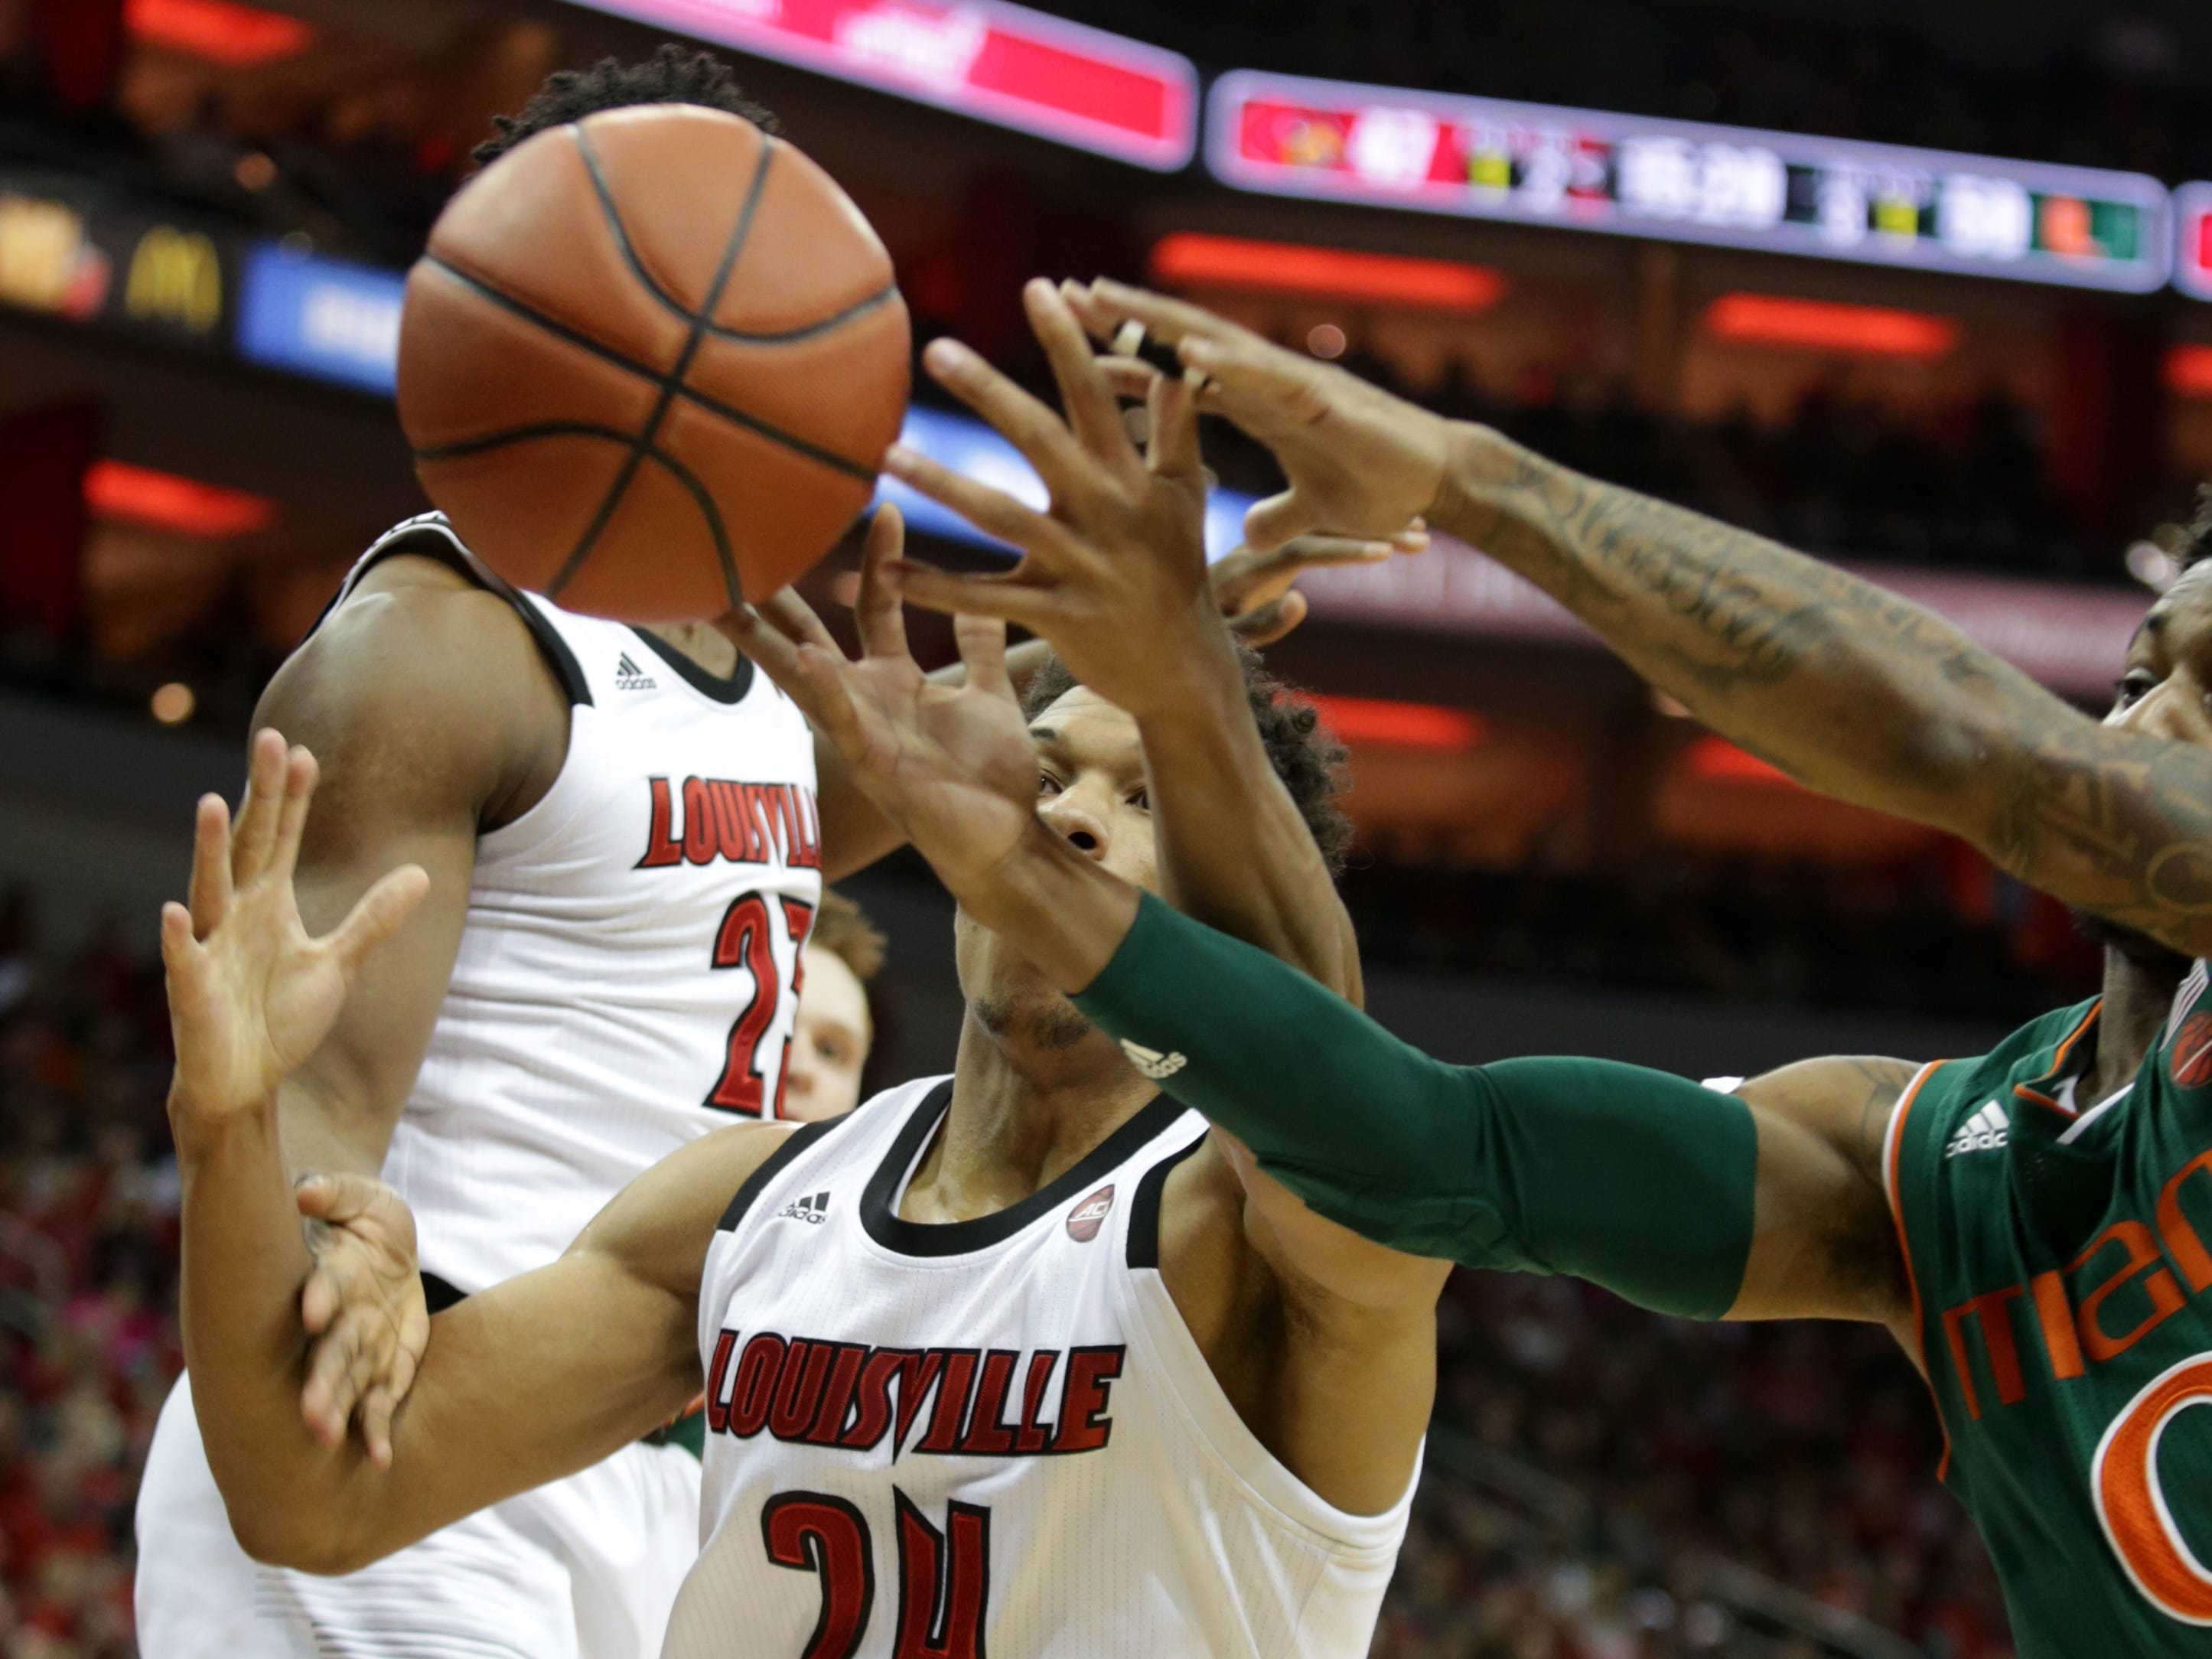 Louisville's Dwayne Sutton battles for a loose ball during second half action against Miami. Jan. 6, 2019.